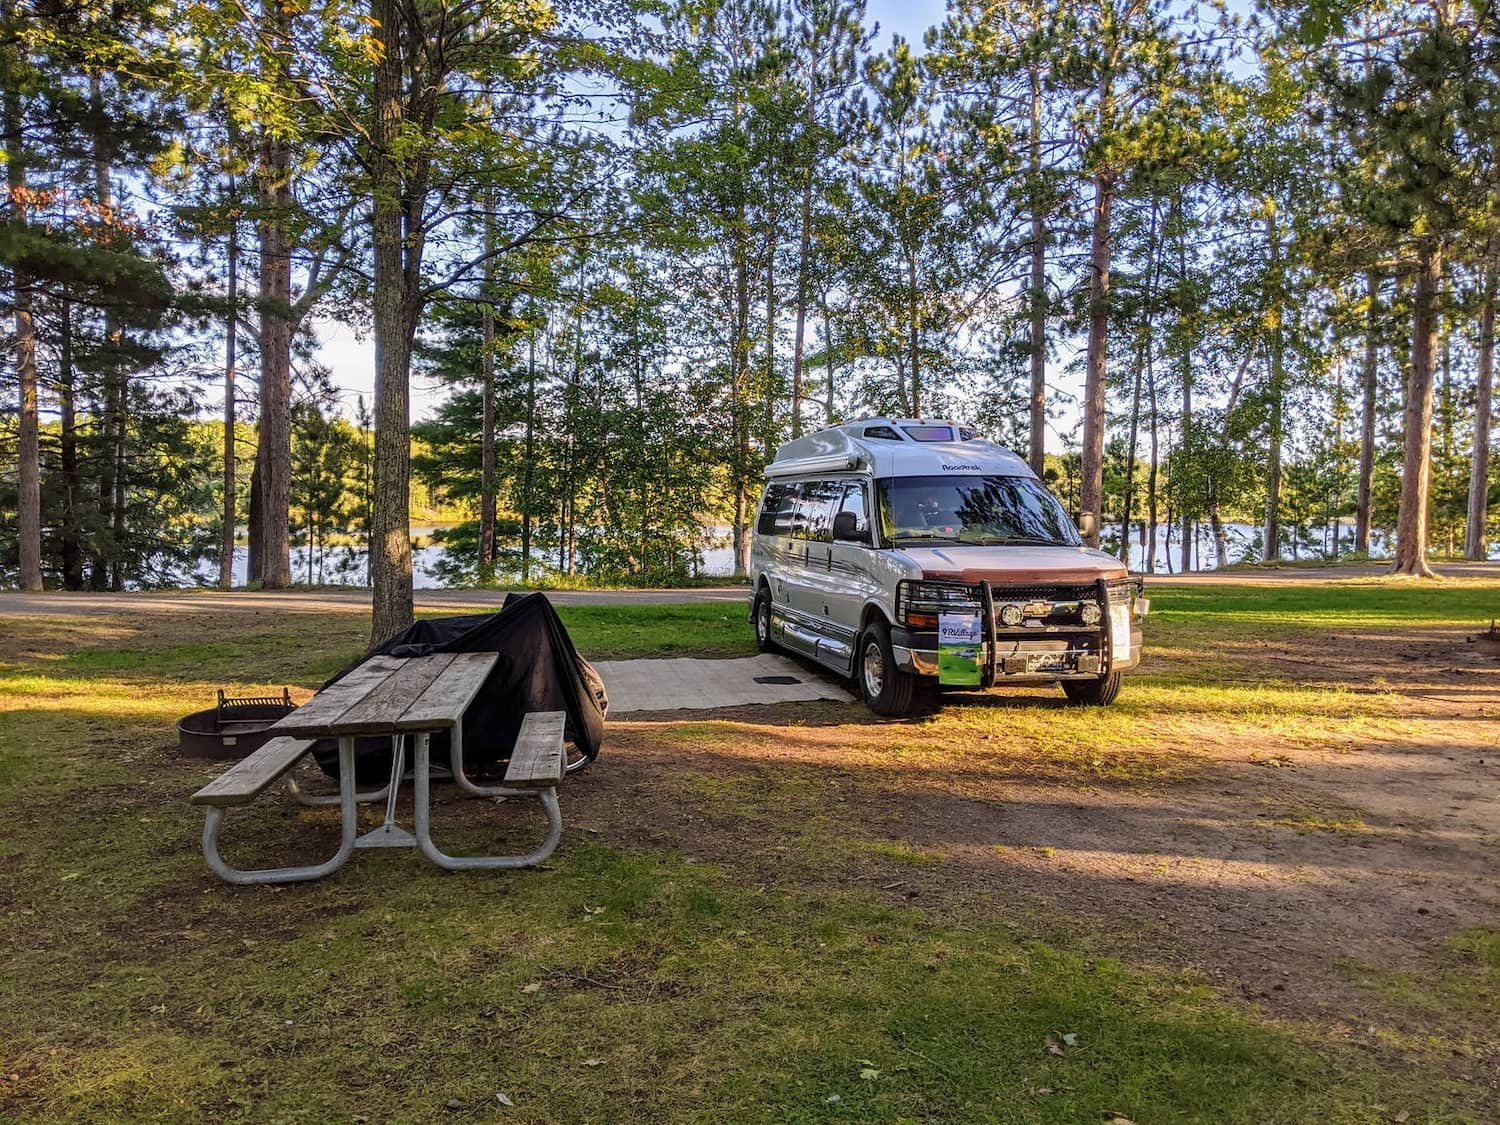 van and picnic table in forest